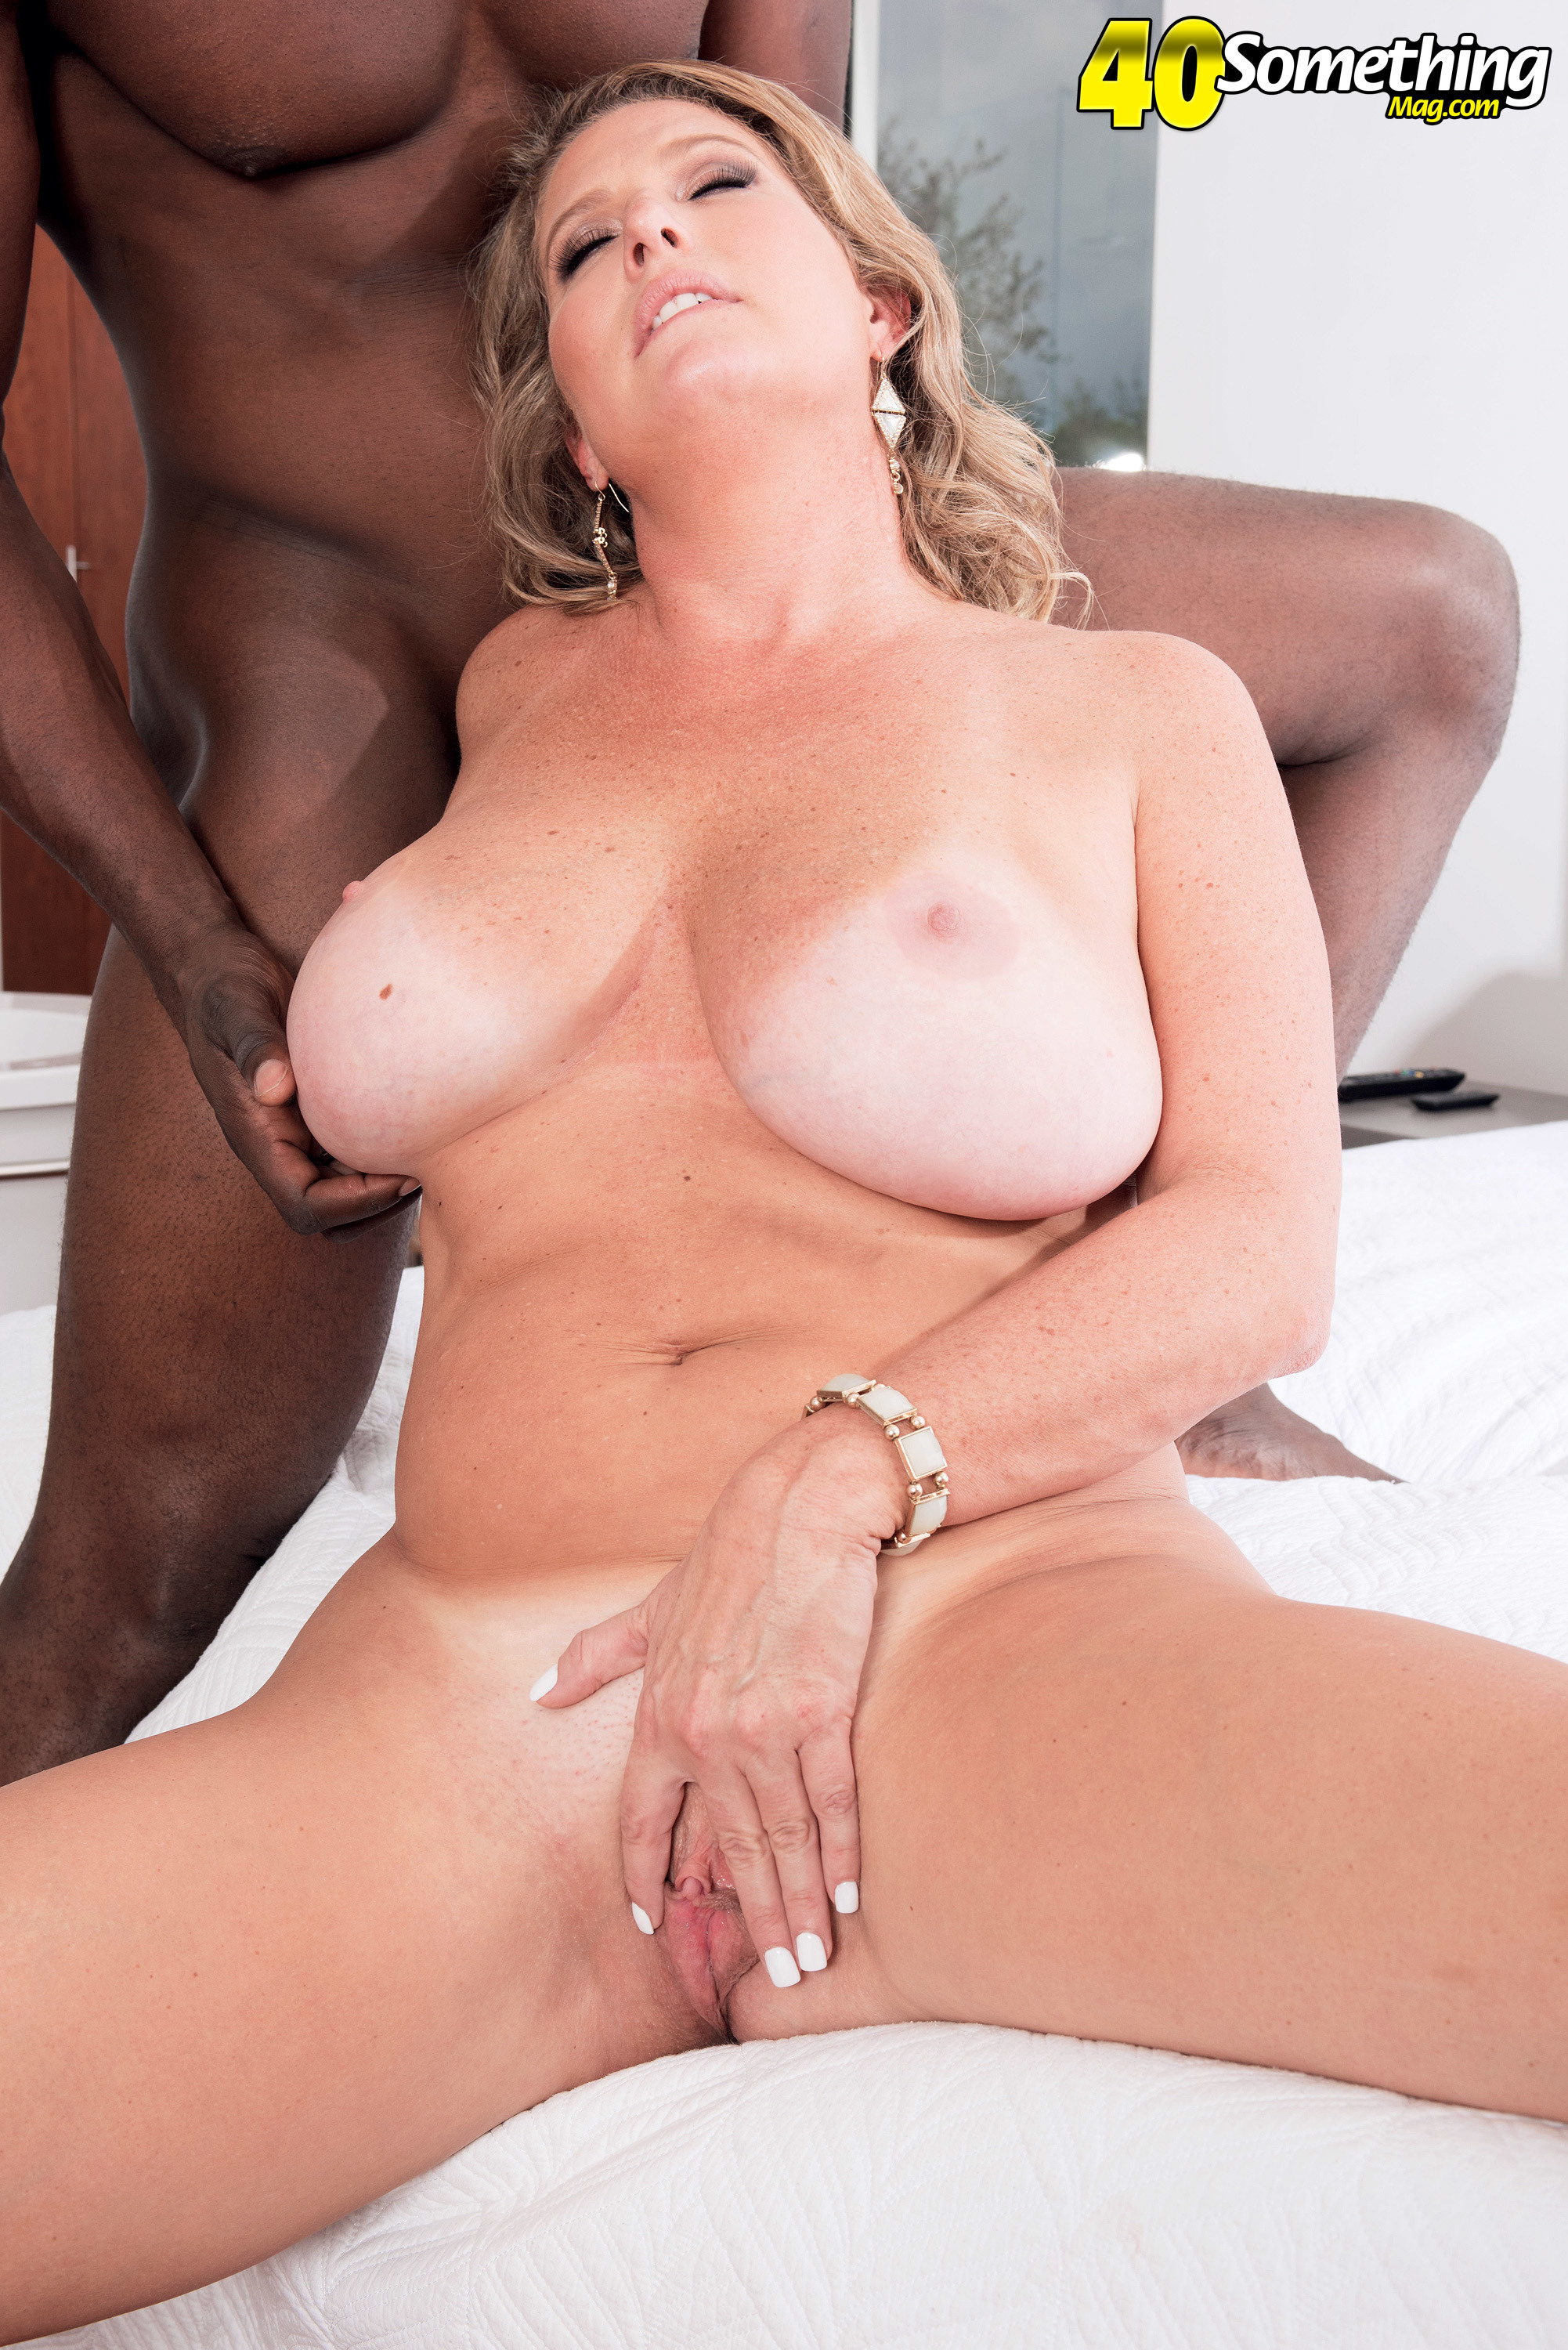 Candace Harley A Plump Mature First Taste Of Black Shlong 608102 Blonde Mom Falls In Luv With Her Black Man